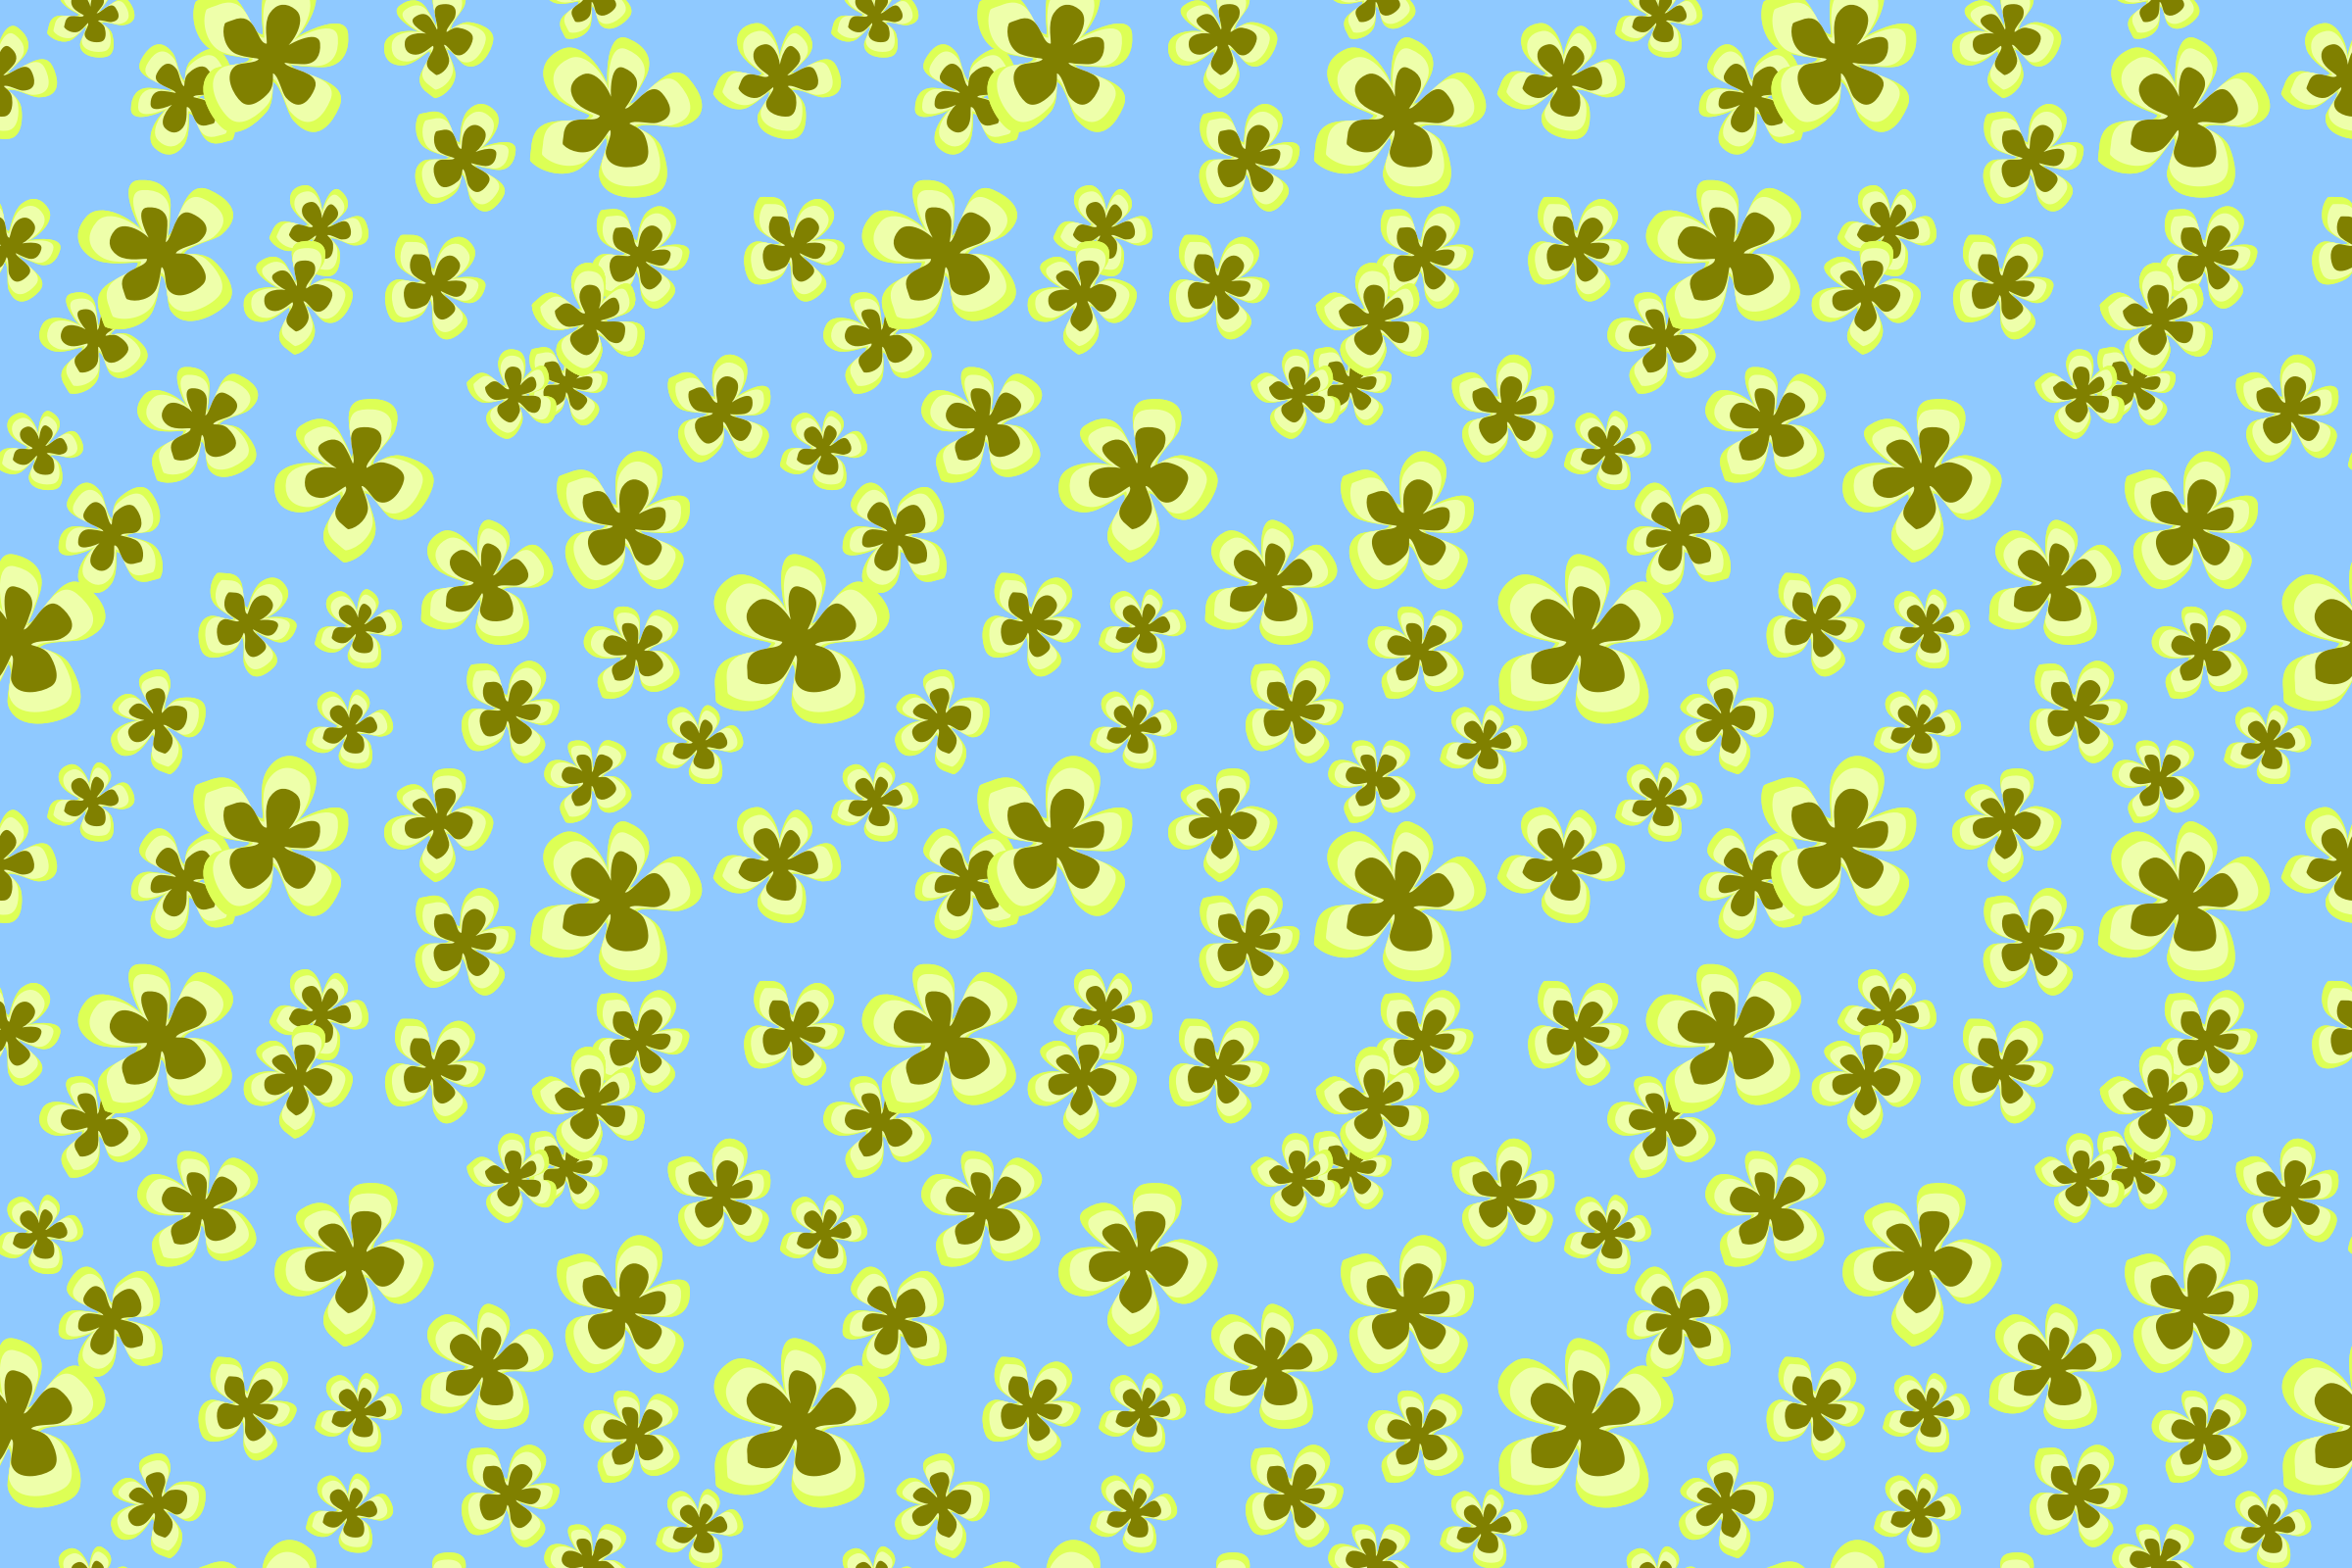 Floral pattern 7 (colour 2) by Firkin